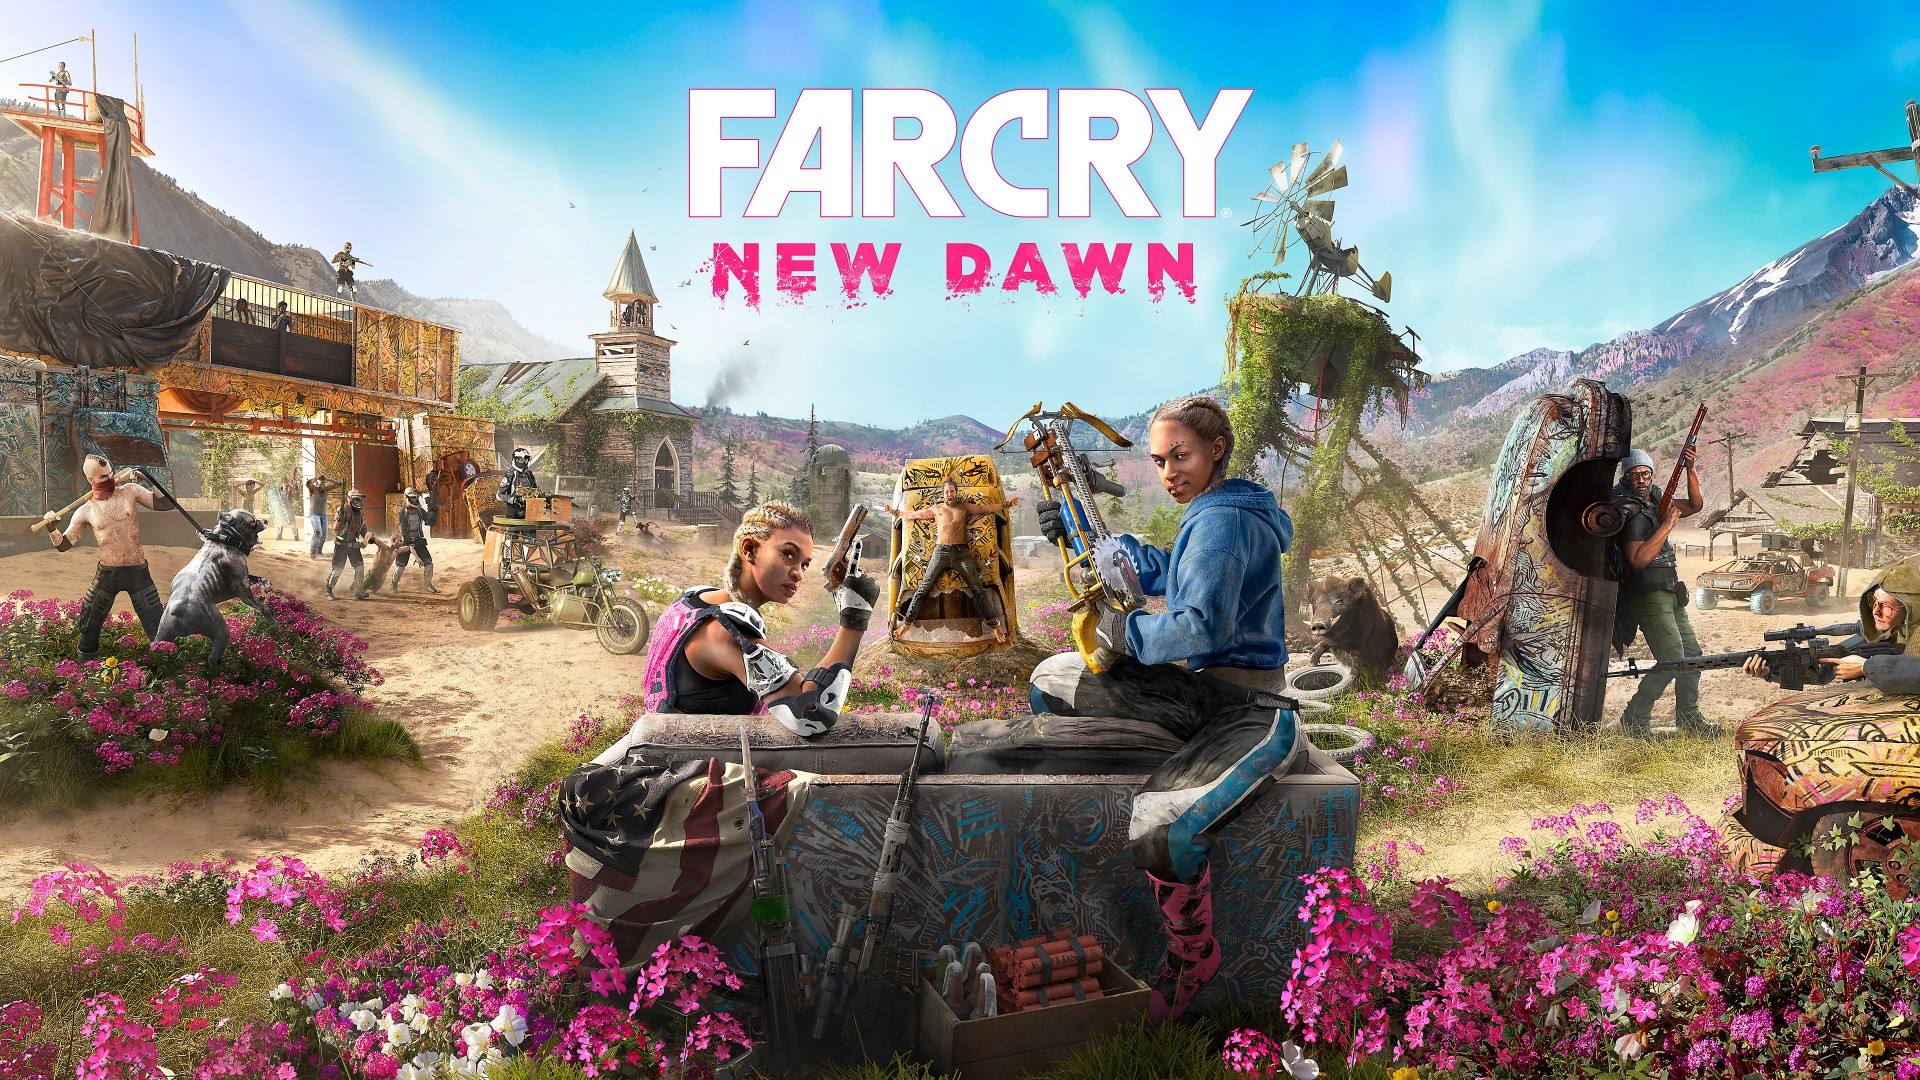 Mario Iphone Wallpaper Hd Far Cry New Dawn Cover Art 2019 Game 4k Wallpapers Hd